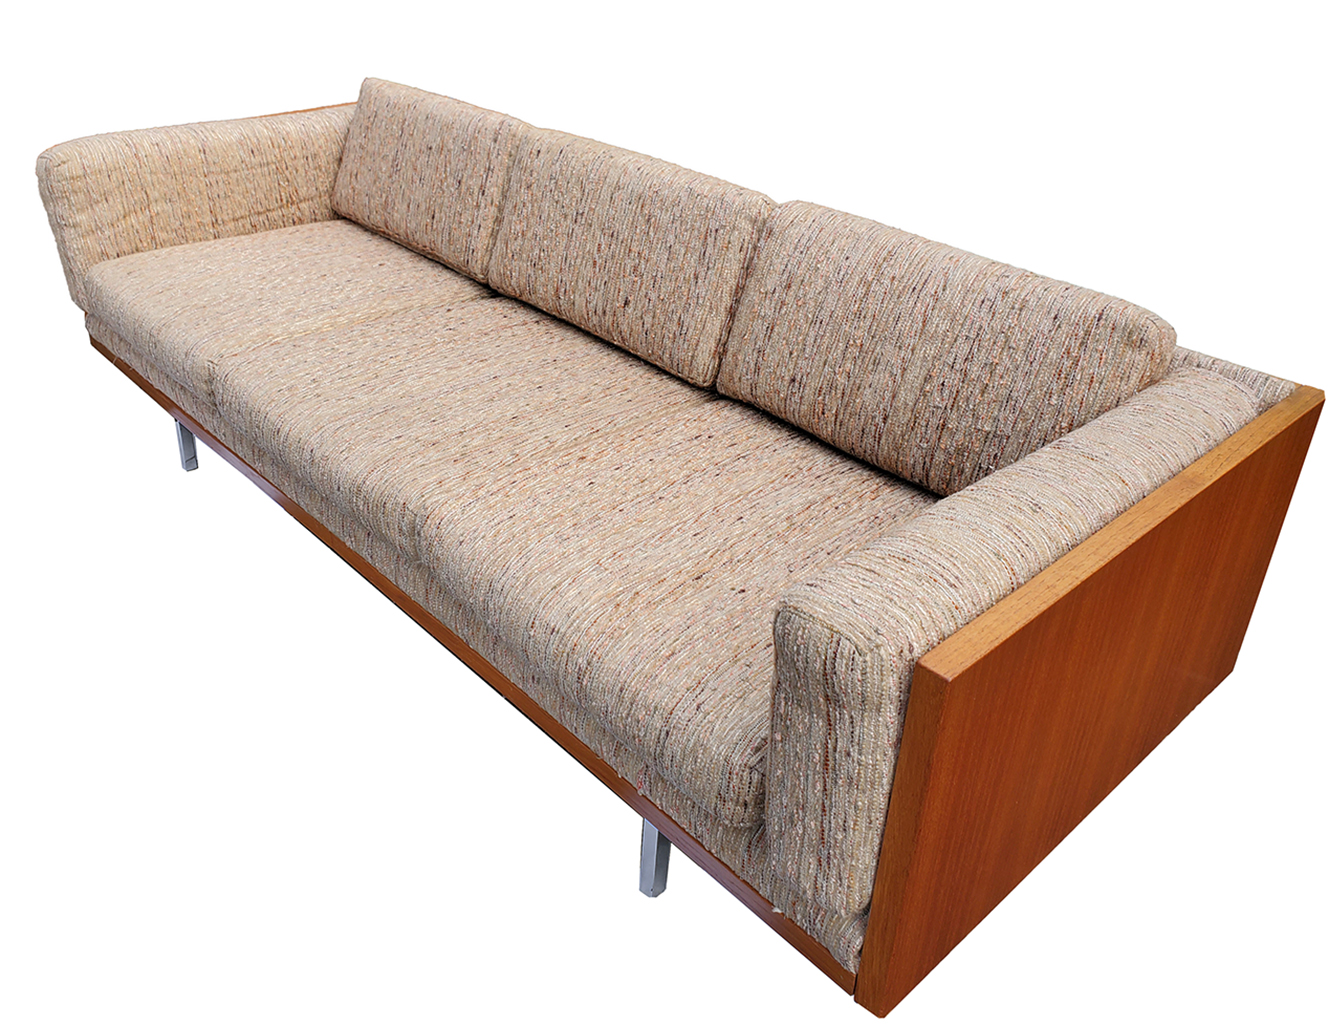 komfort-of-denmark-1960s-case-sofa-lg.jpg